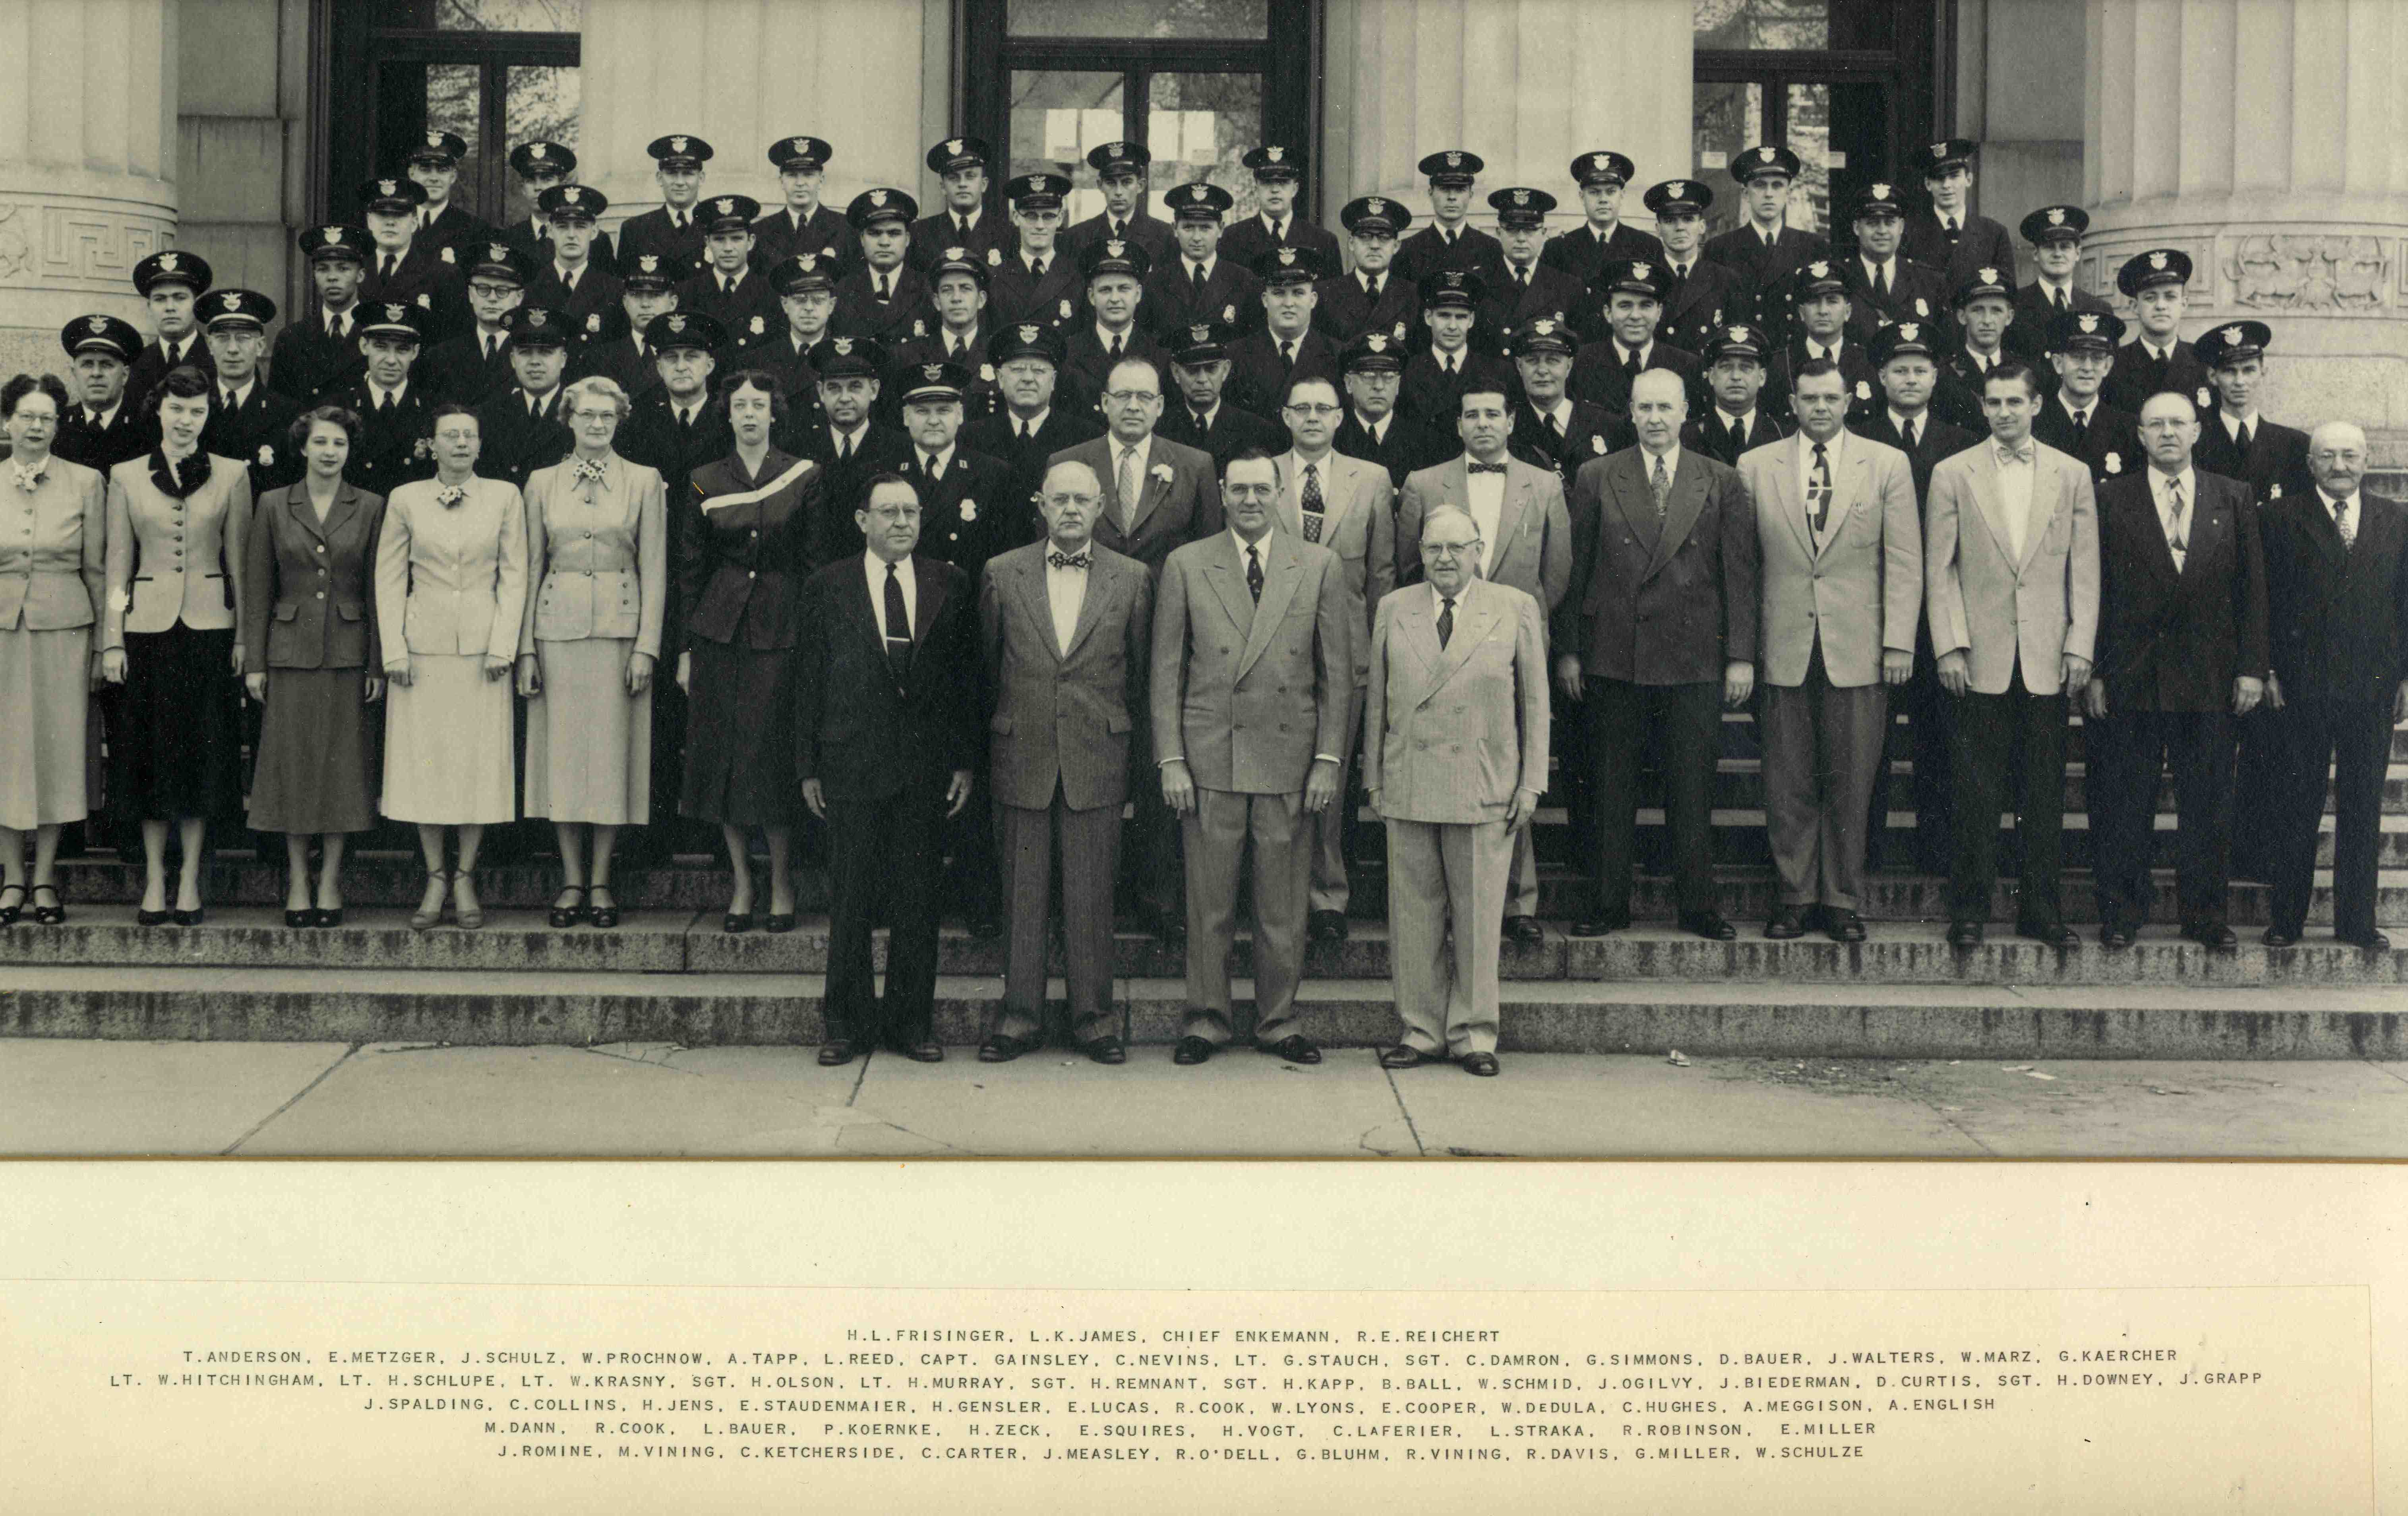 Ann Arbor Police Department Group Photo, May 1953 image